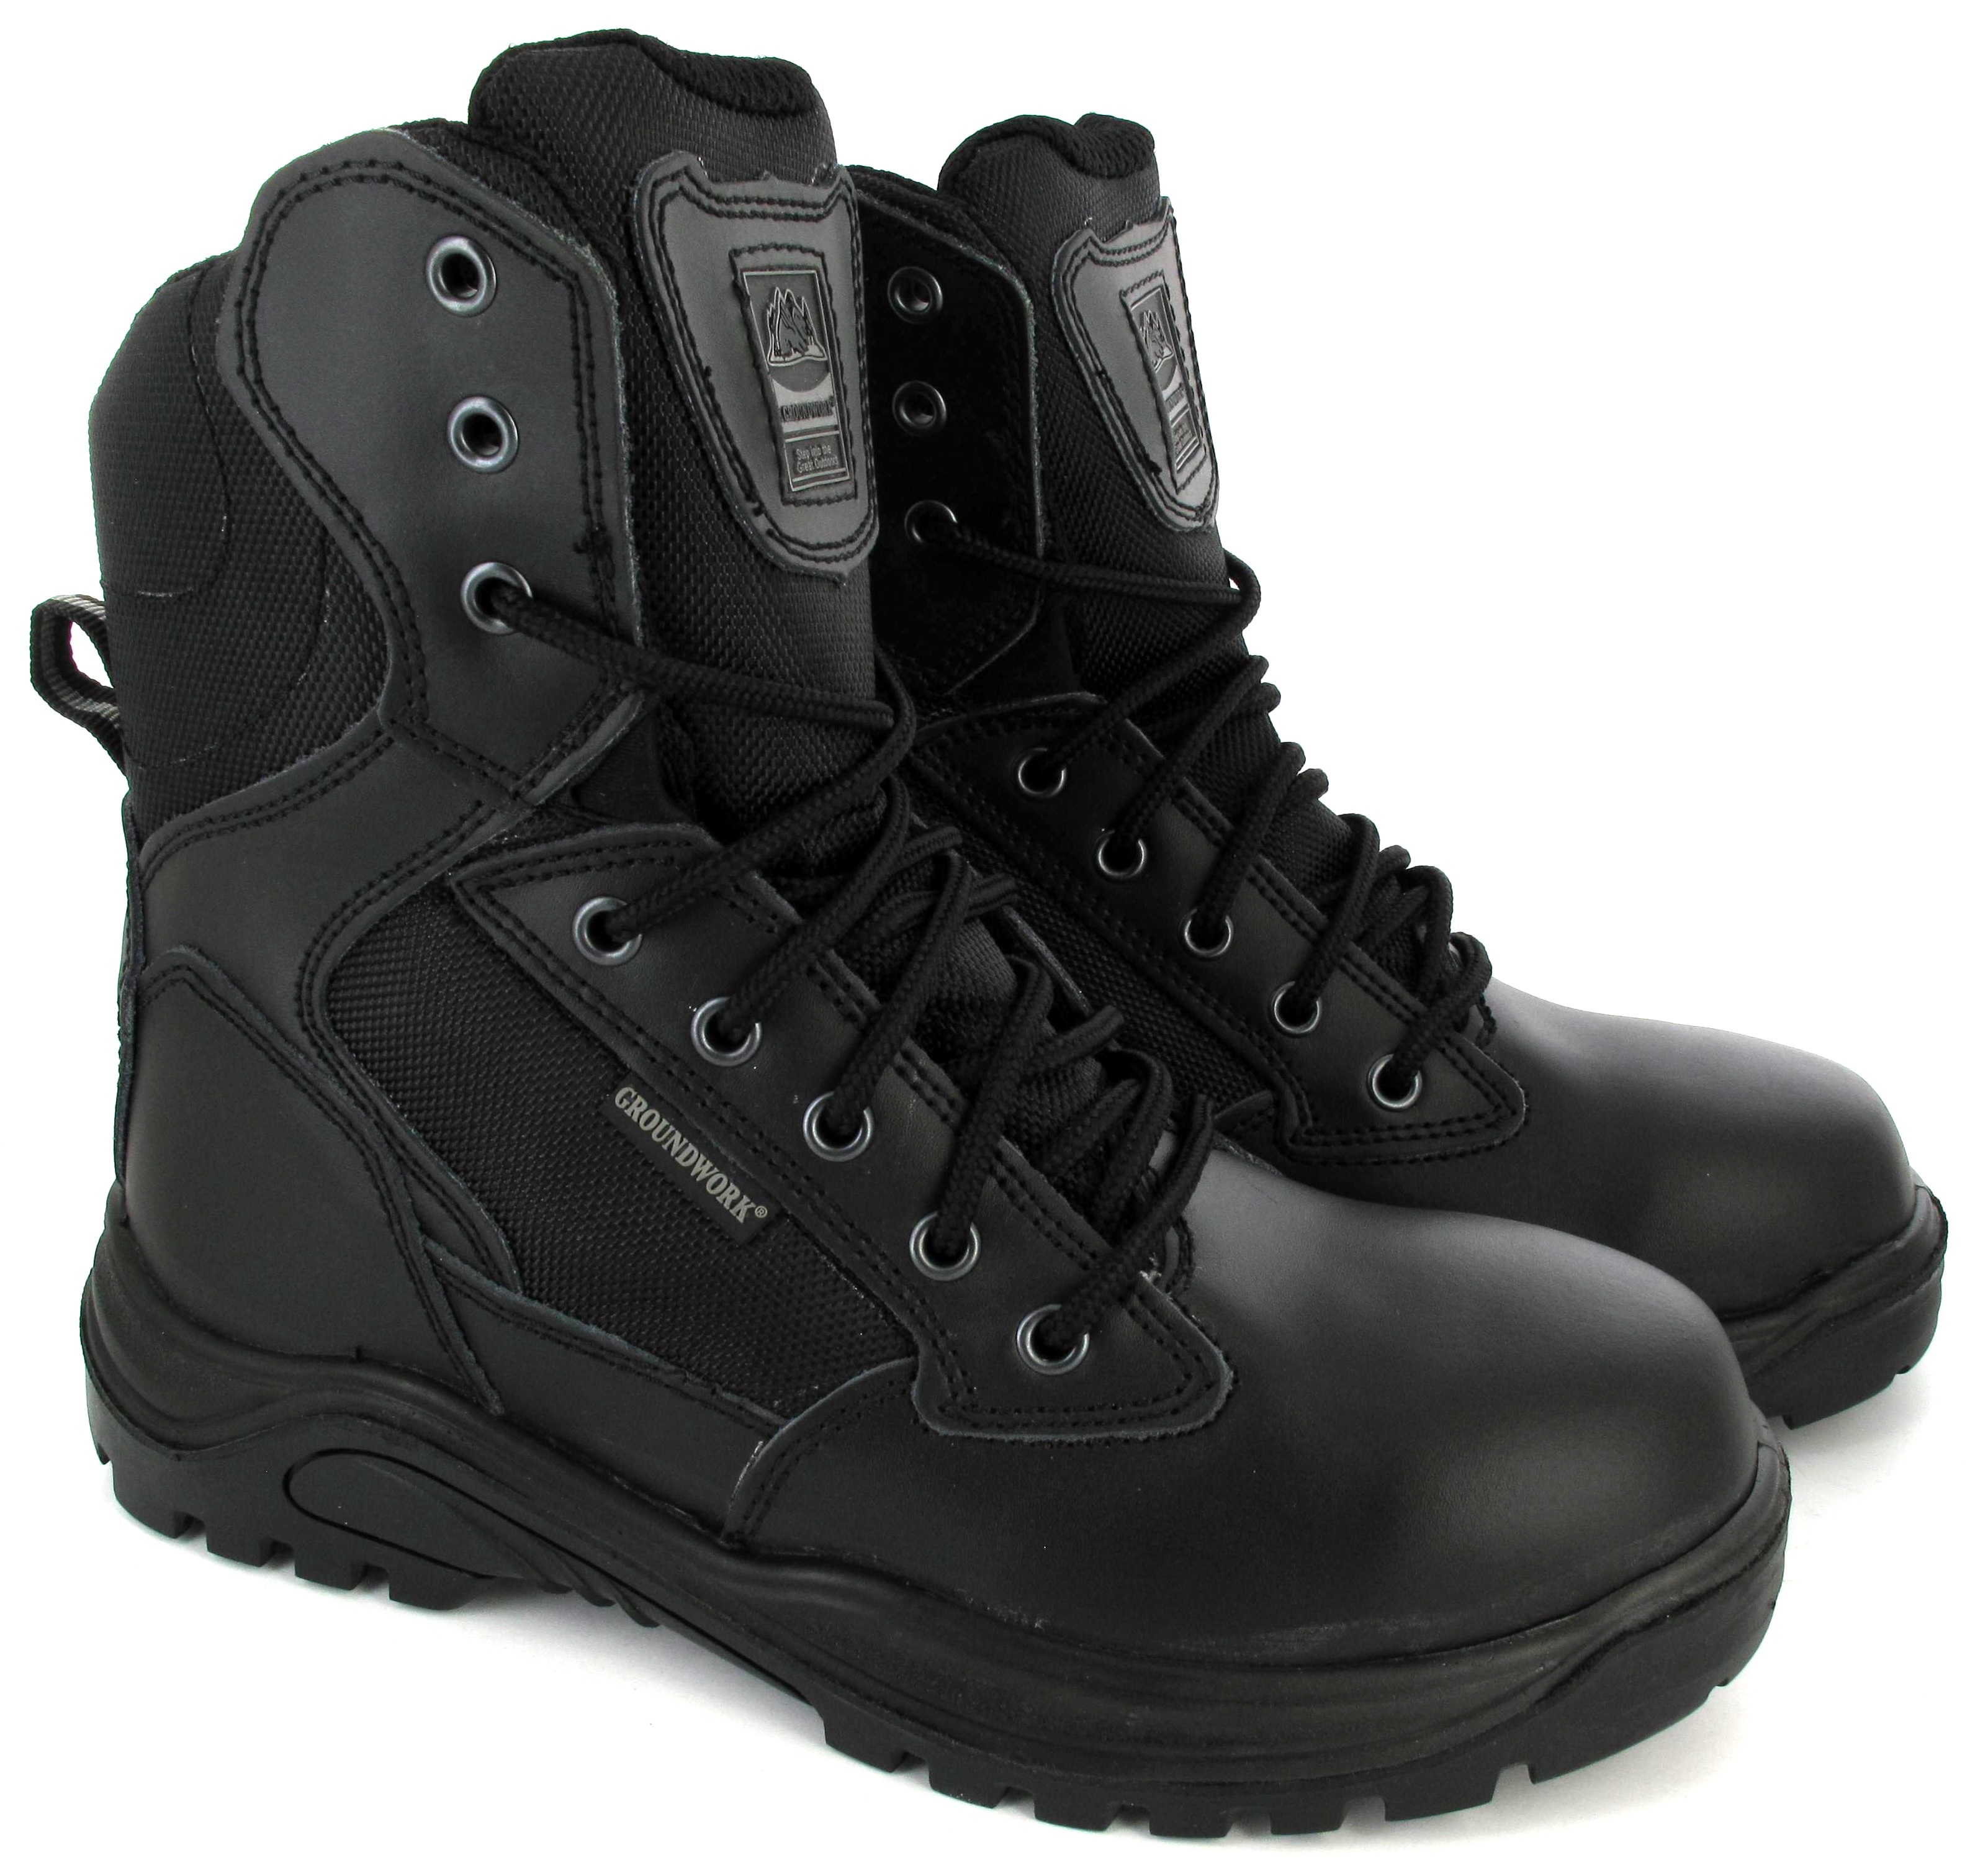 Swat Shoes Online